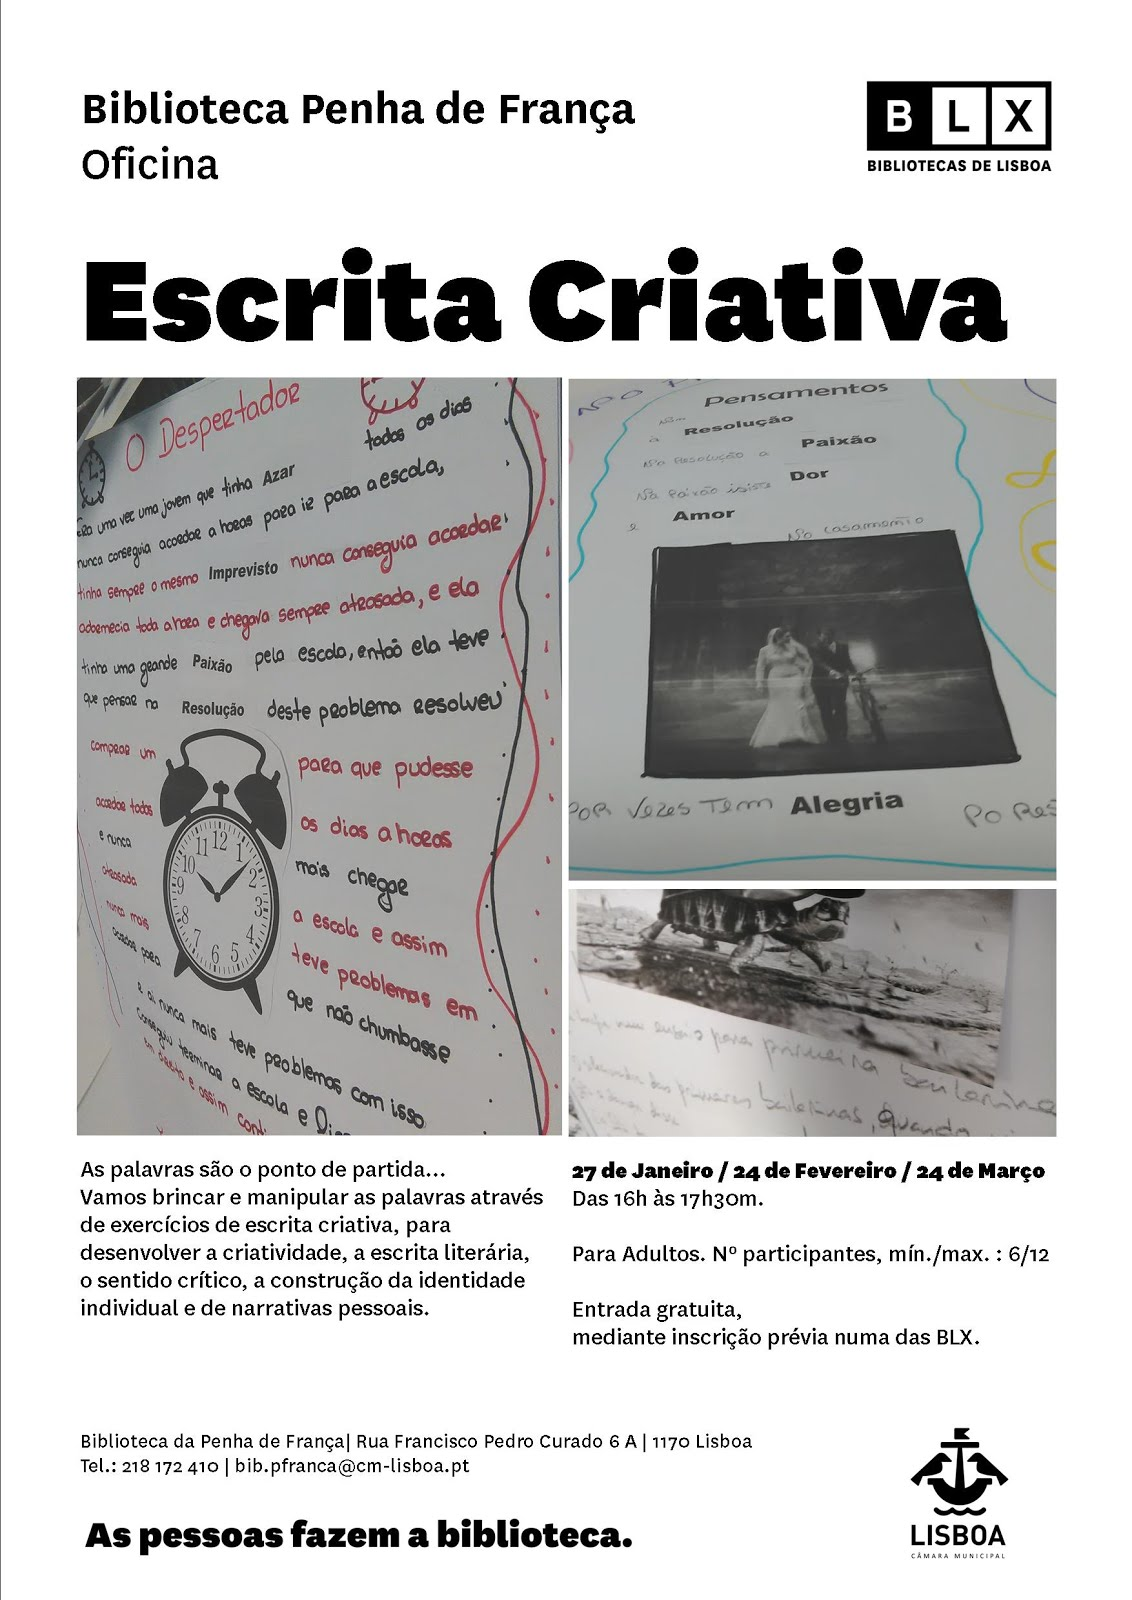 Escrita Criativa